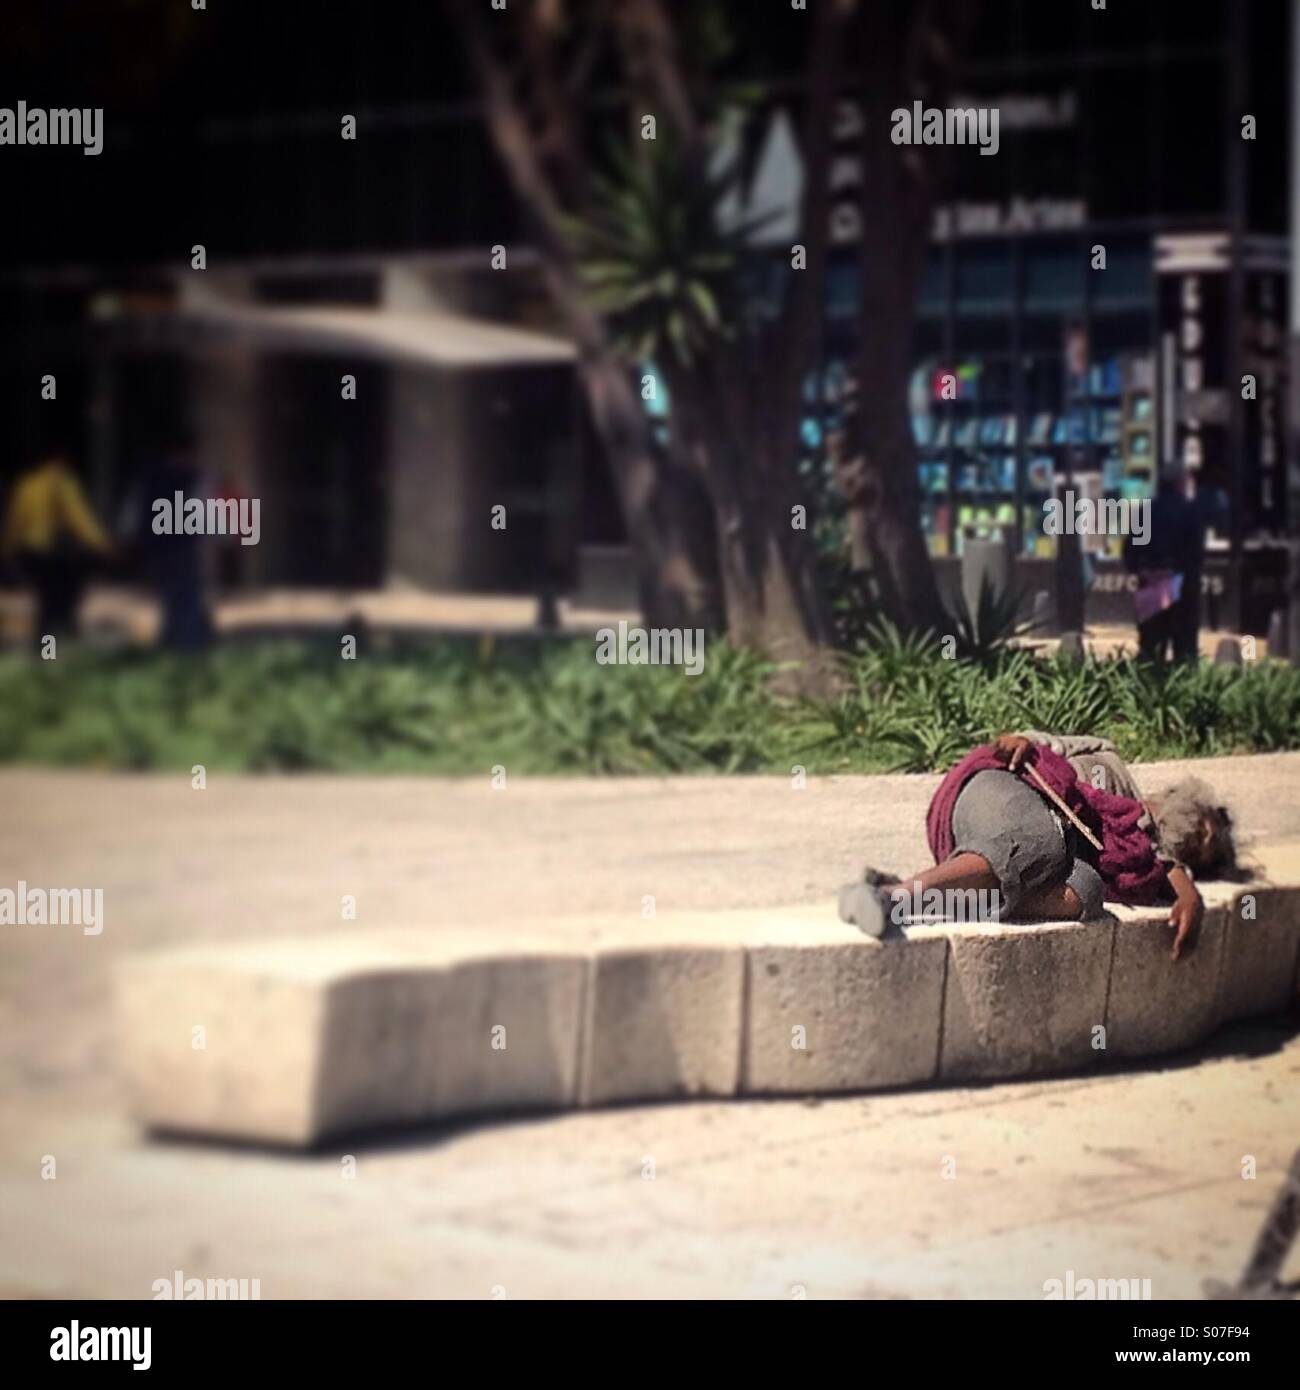 A homeless sleeps in a bench in Reforma Avenue, Mexico City, Mexico - Stock Image